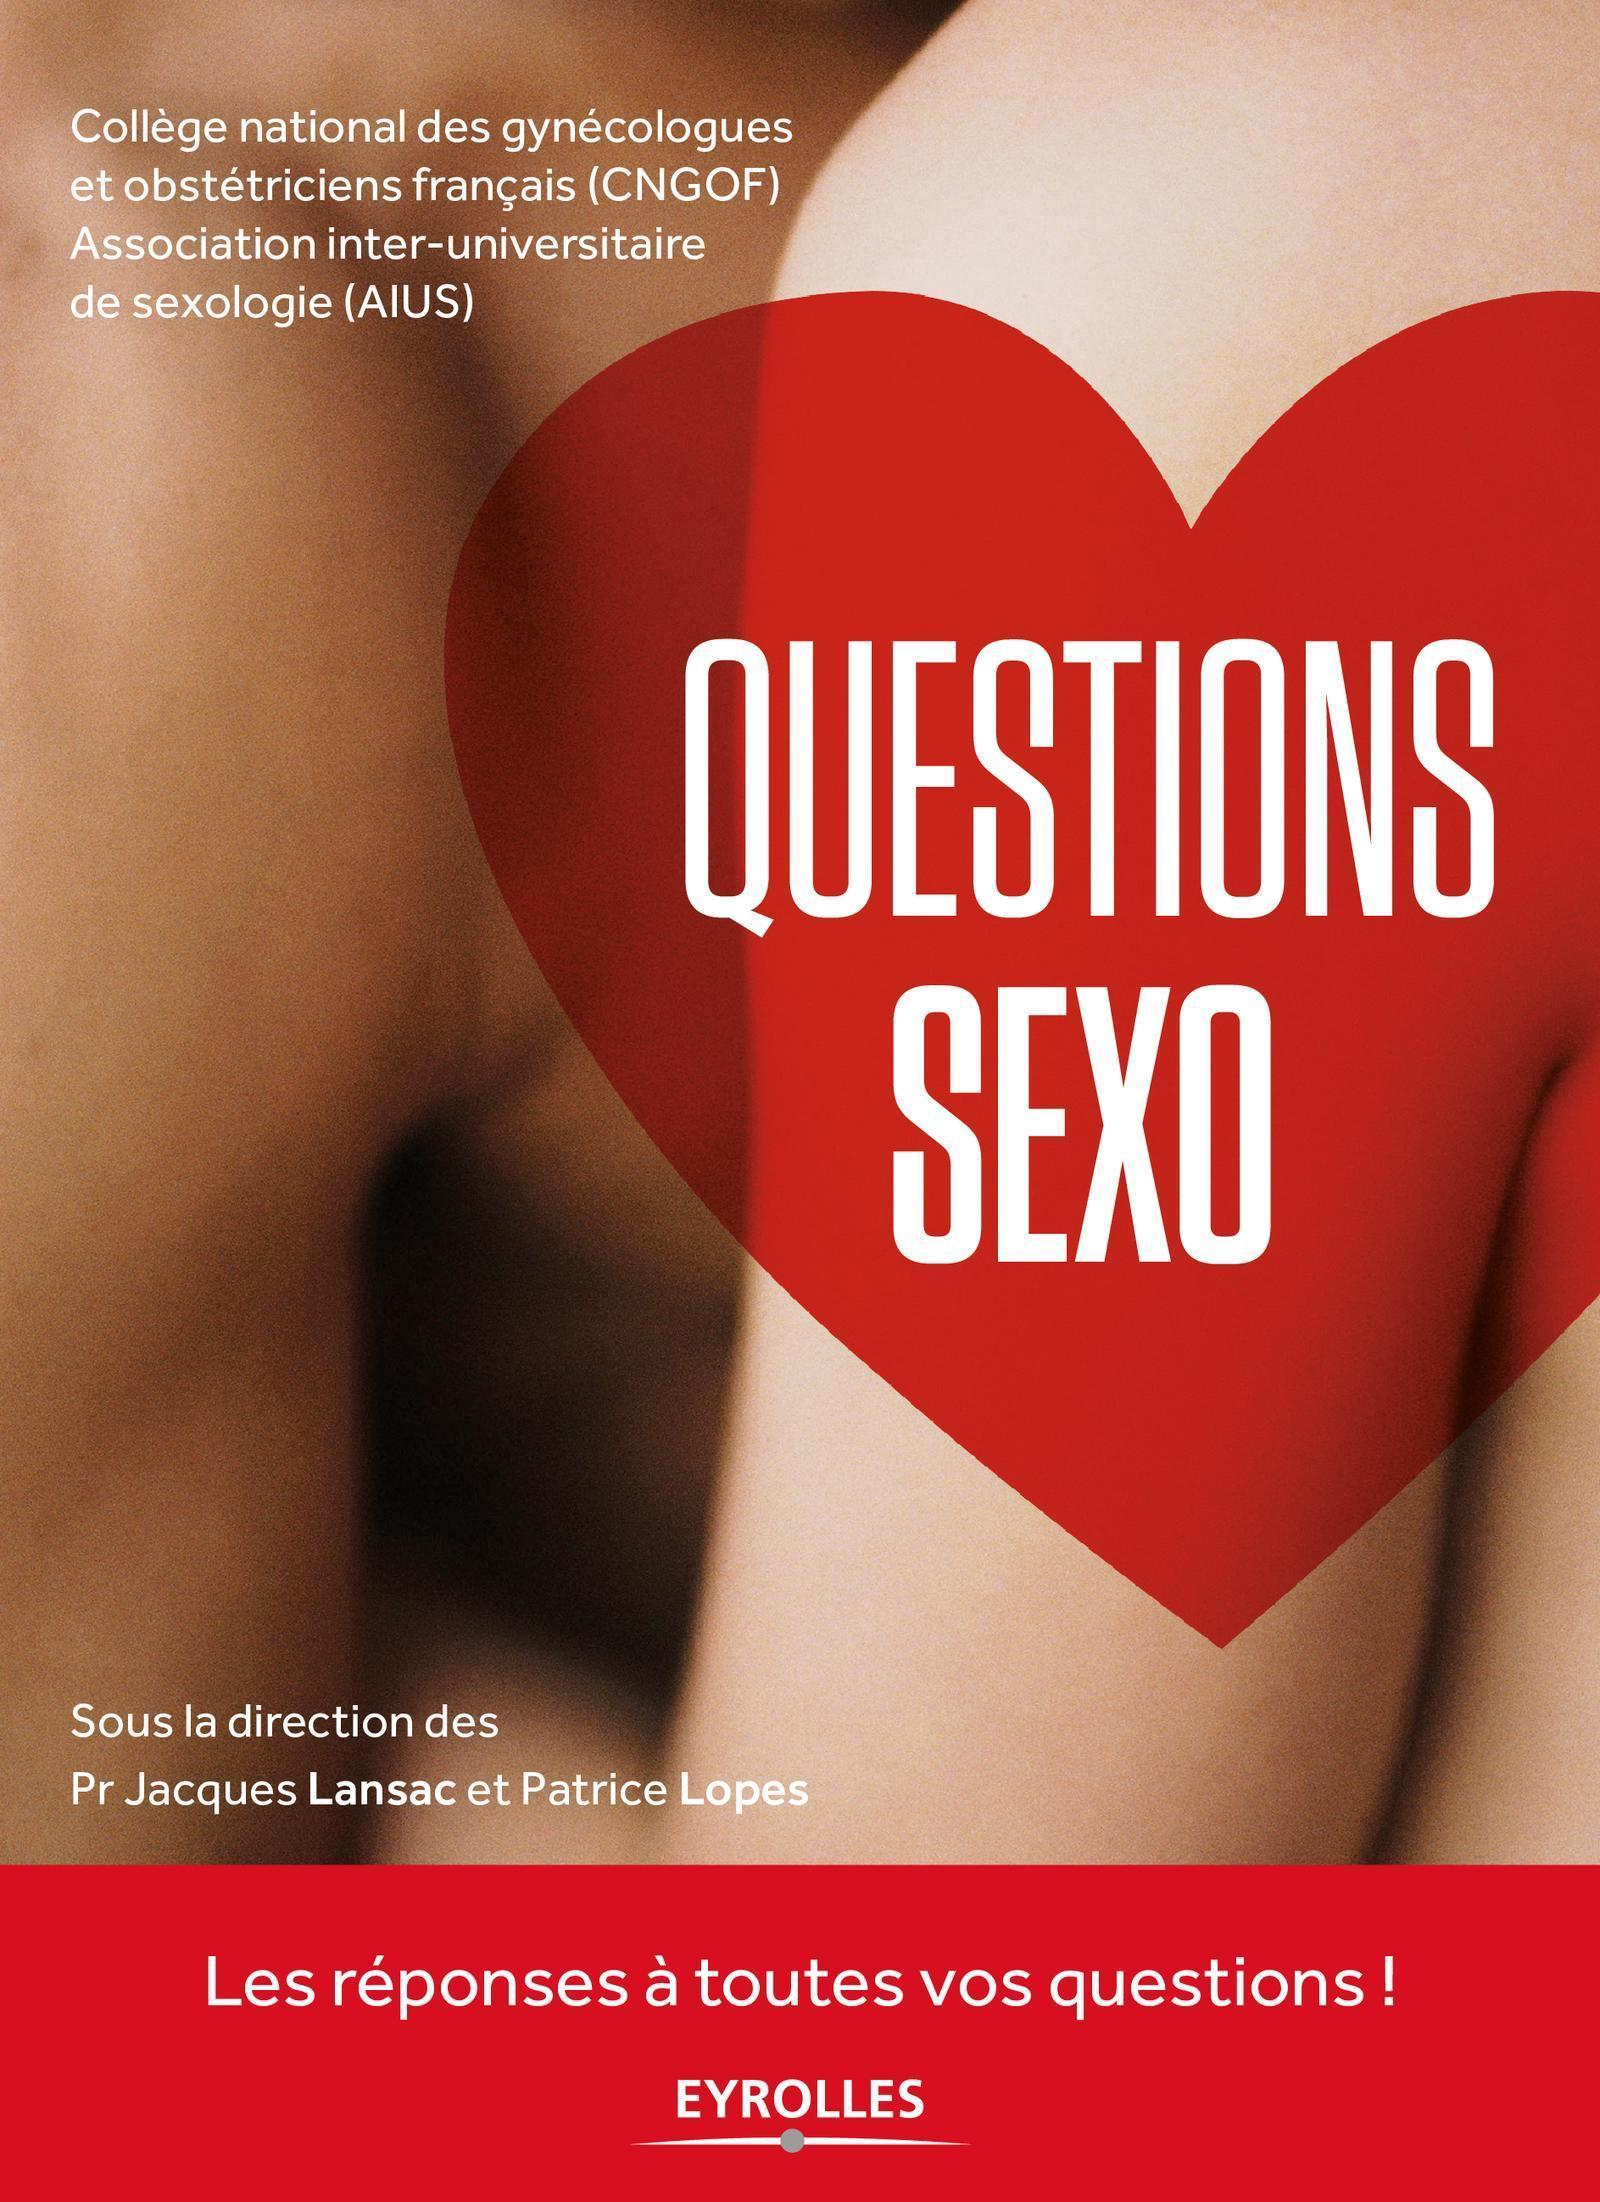 QUESTIONS SEXO